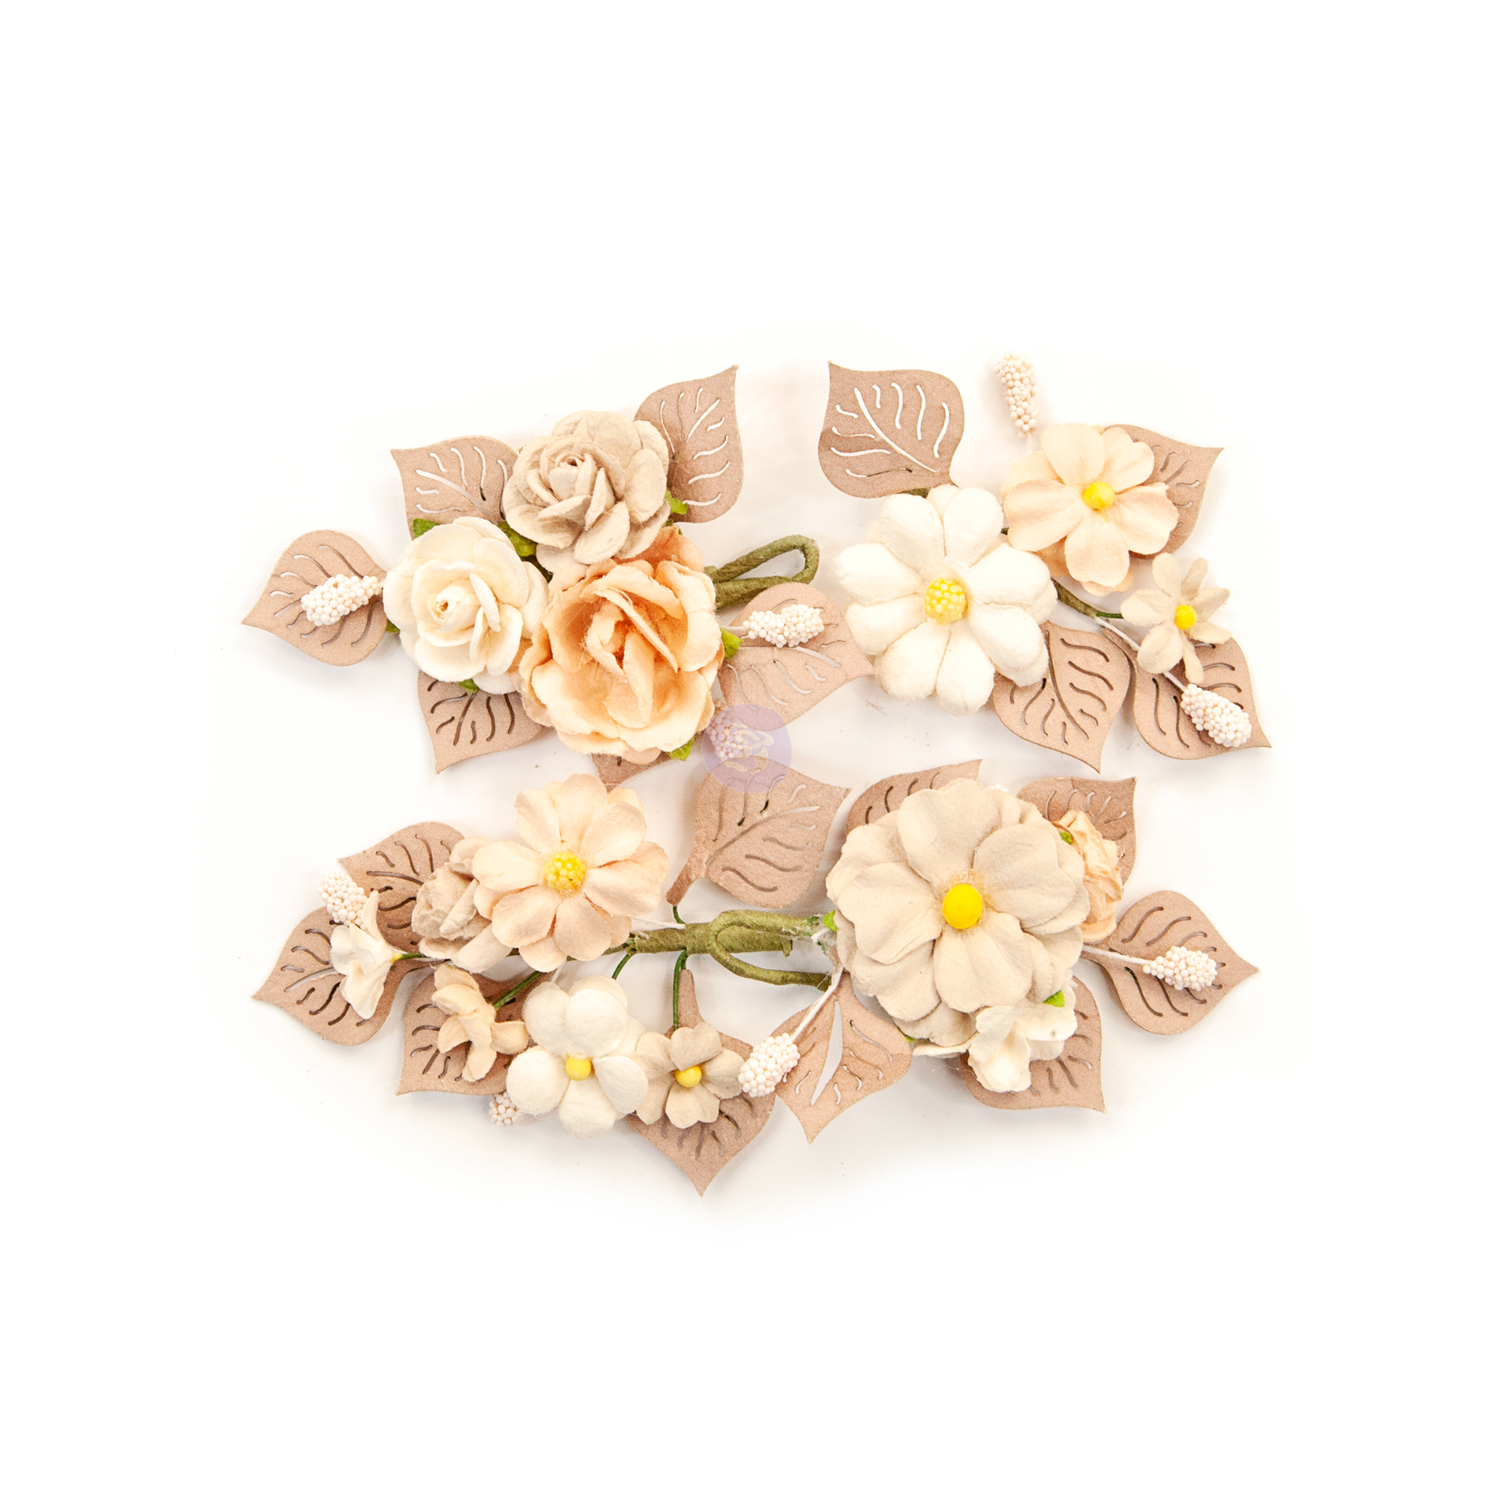 Rustic Floral - Pretty Pale Flowers - Prima